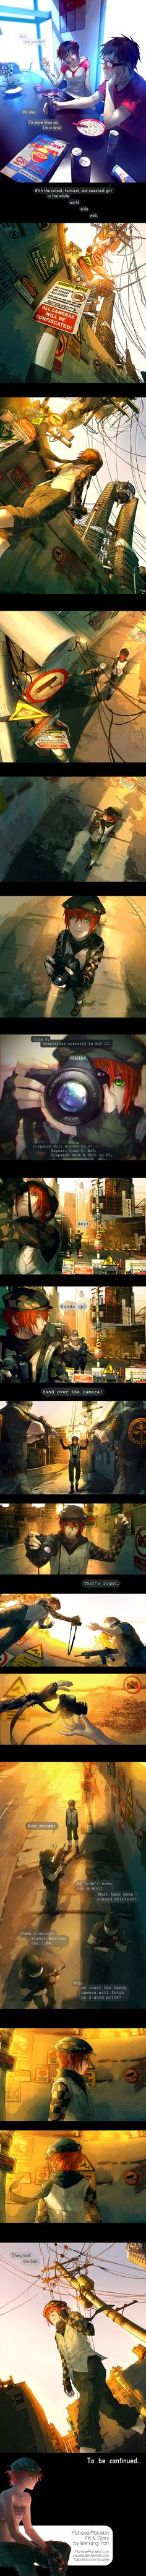 Fisheye Placebo: Ch0 - Part 4 by yuumei.deviantart.com on @deviantART